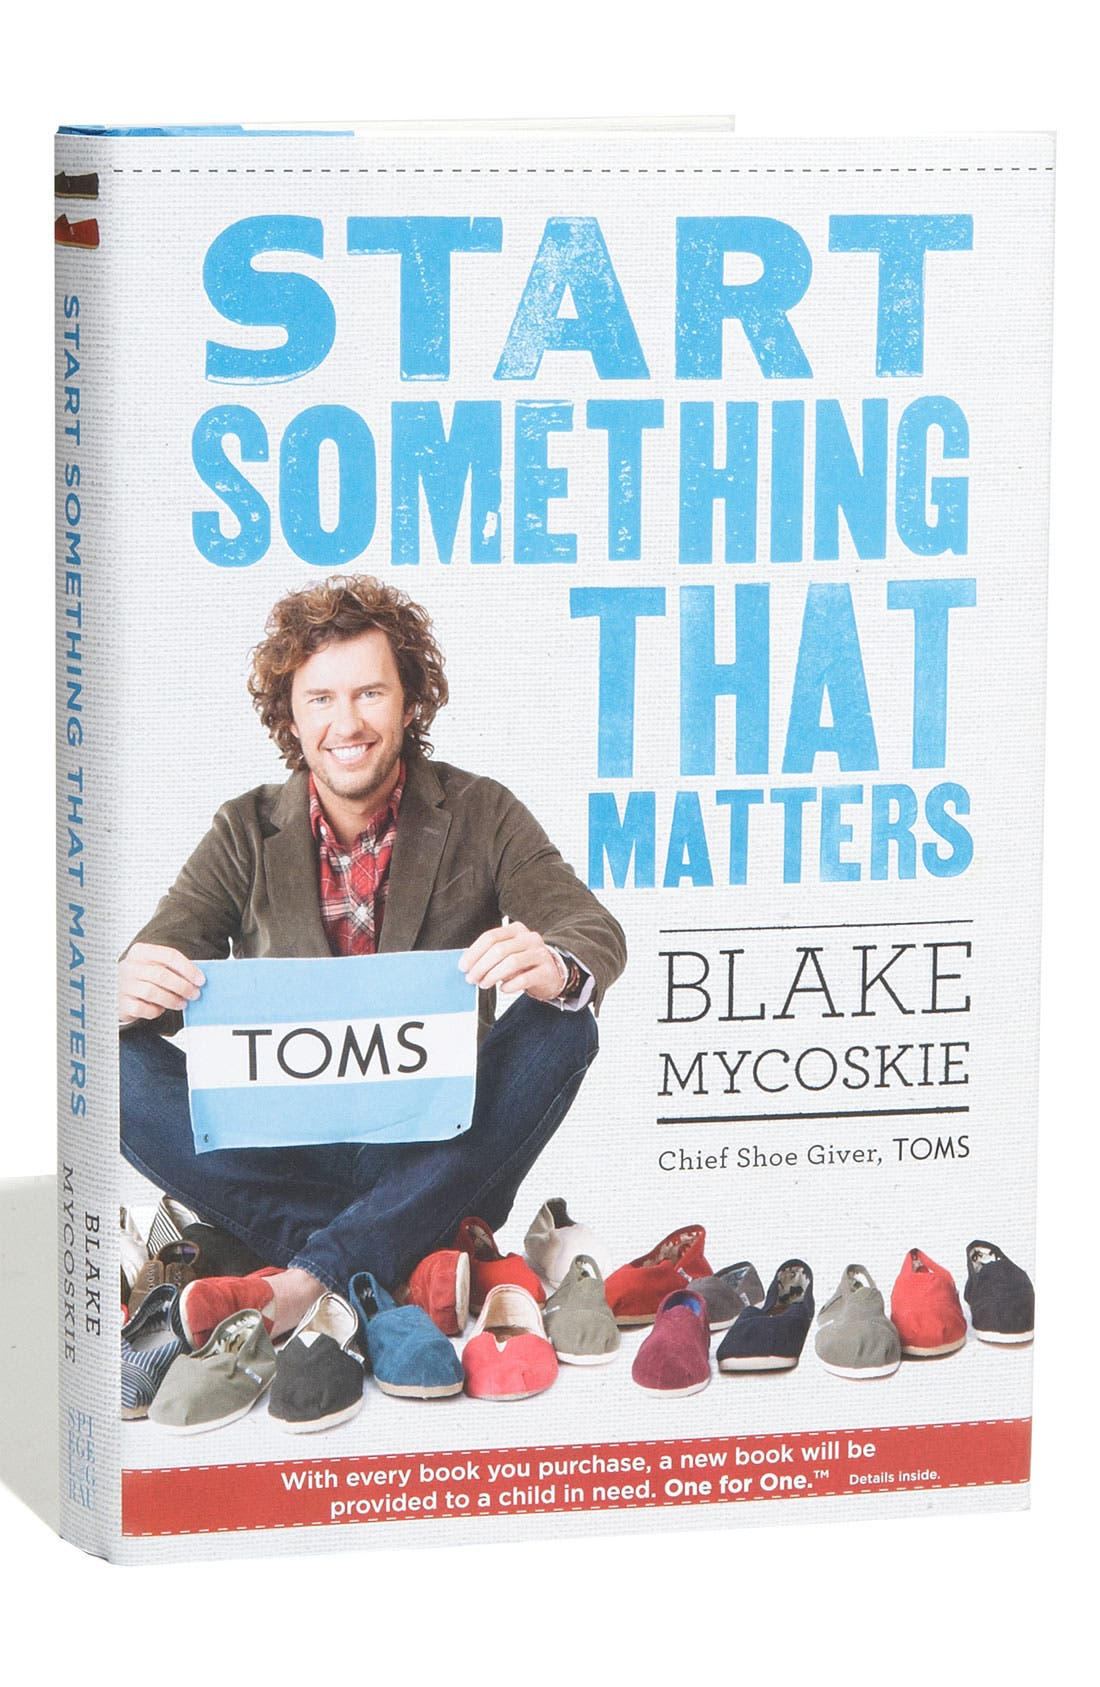 Alternate Image 1 Selected - TOMS 'Start Something That Matters' Book